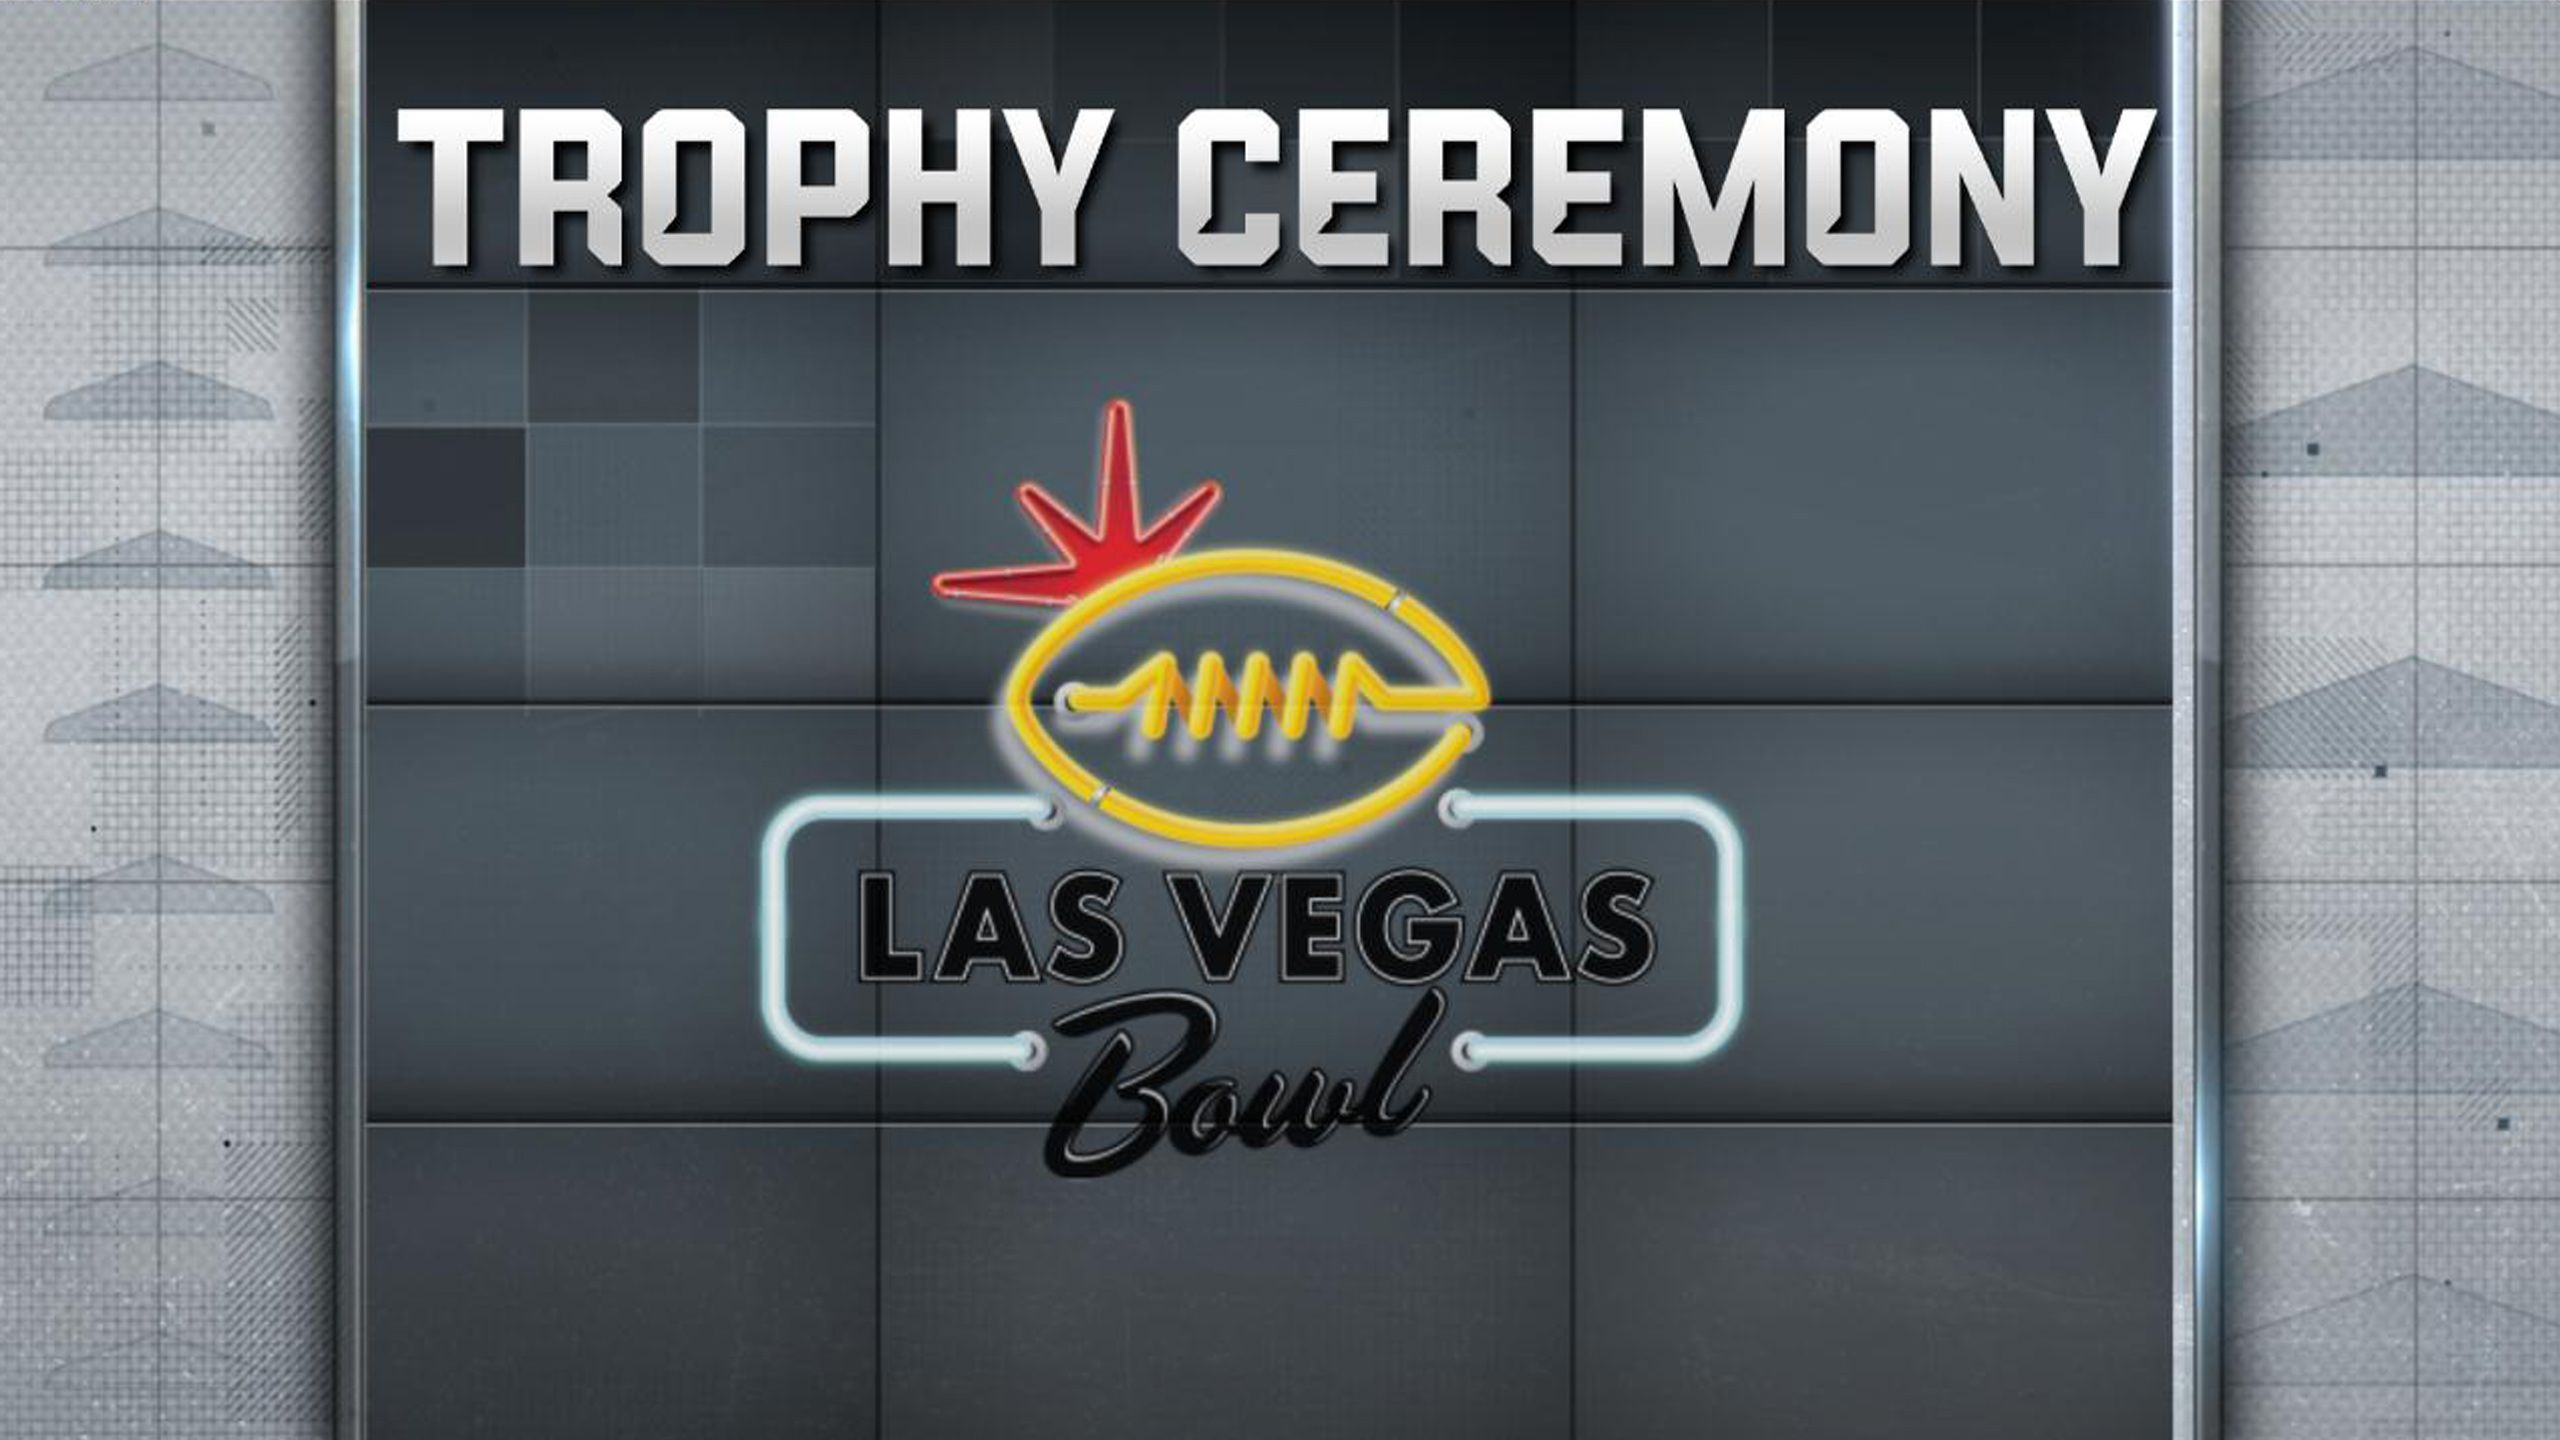 Las Vegas Bowl Trophy Ceremony Presented by Capital One